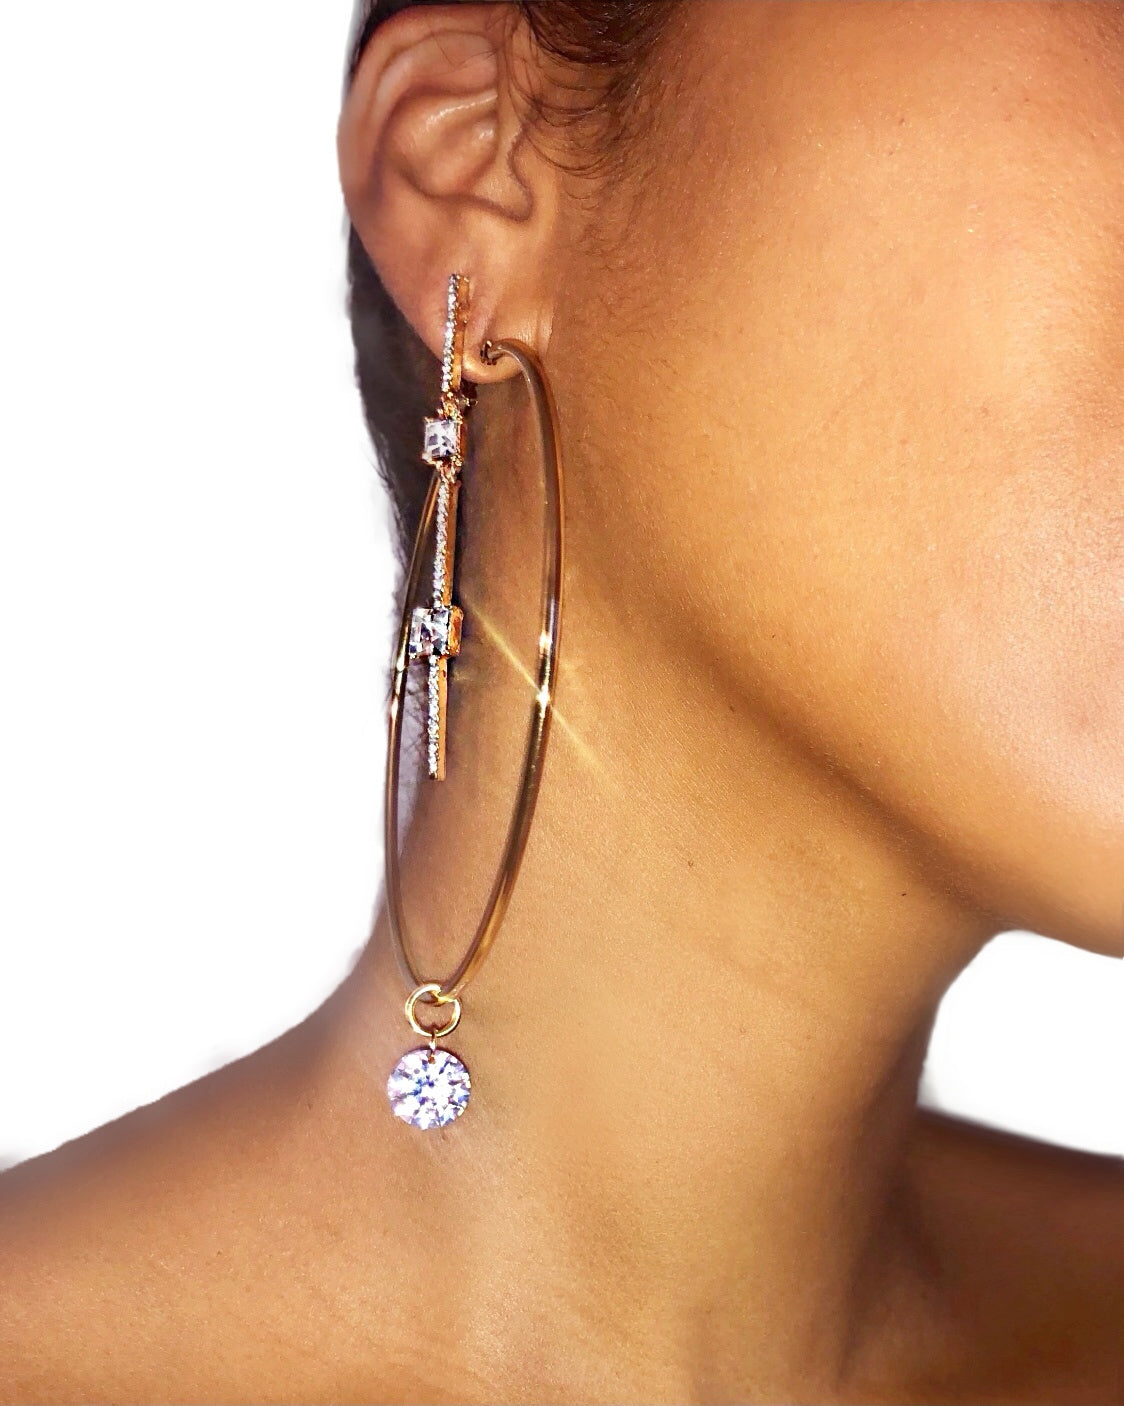 Izana Earrings 2 pc set {view}